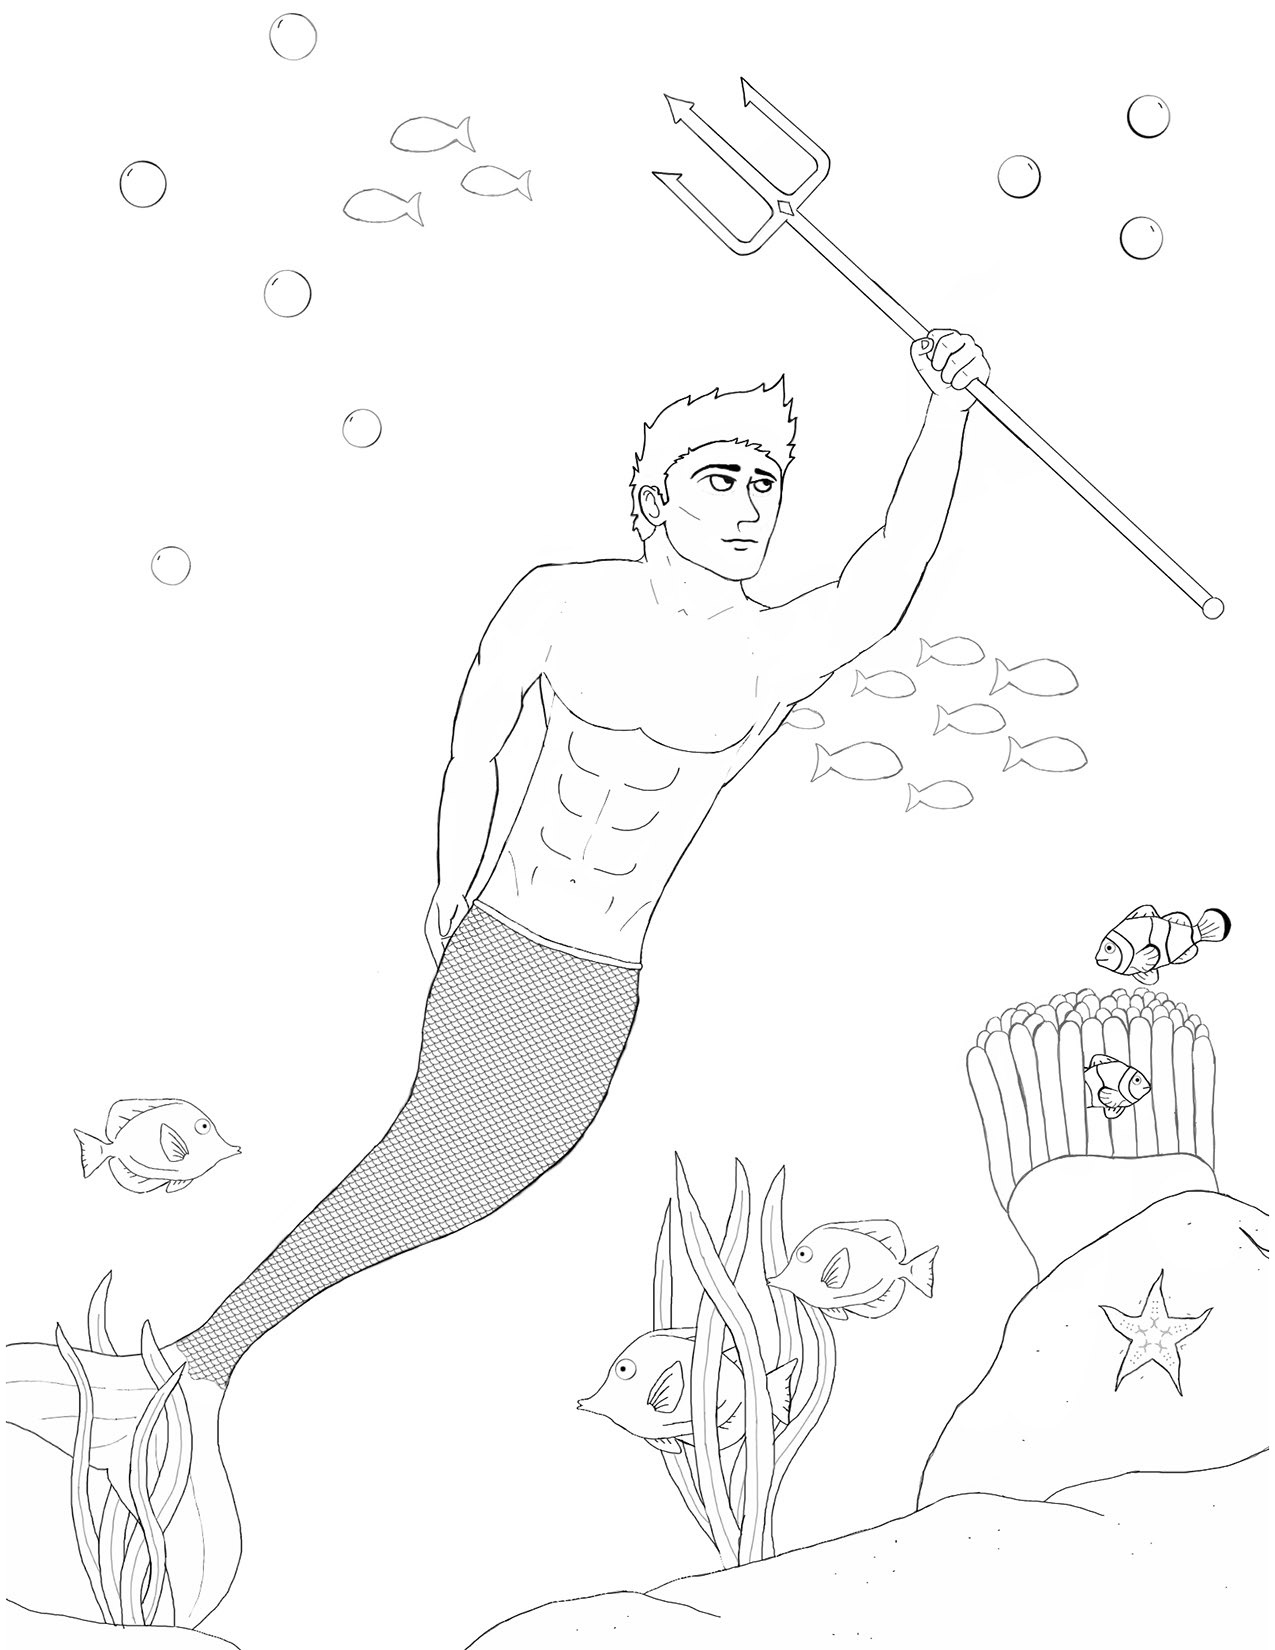 Merman with Trident Coloring Page